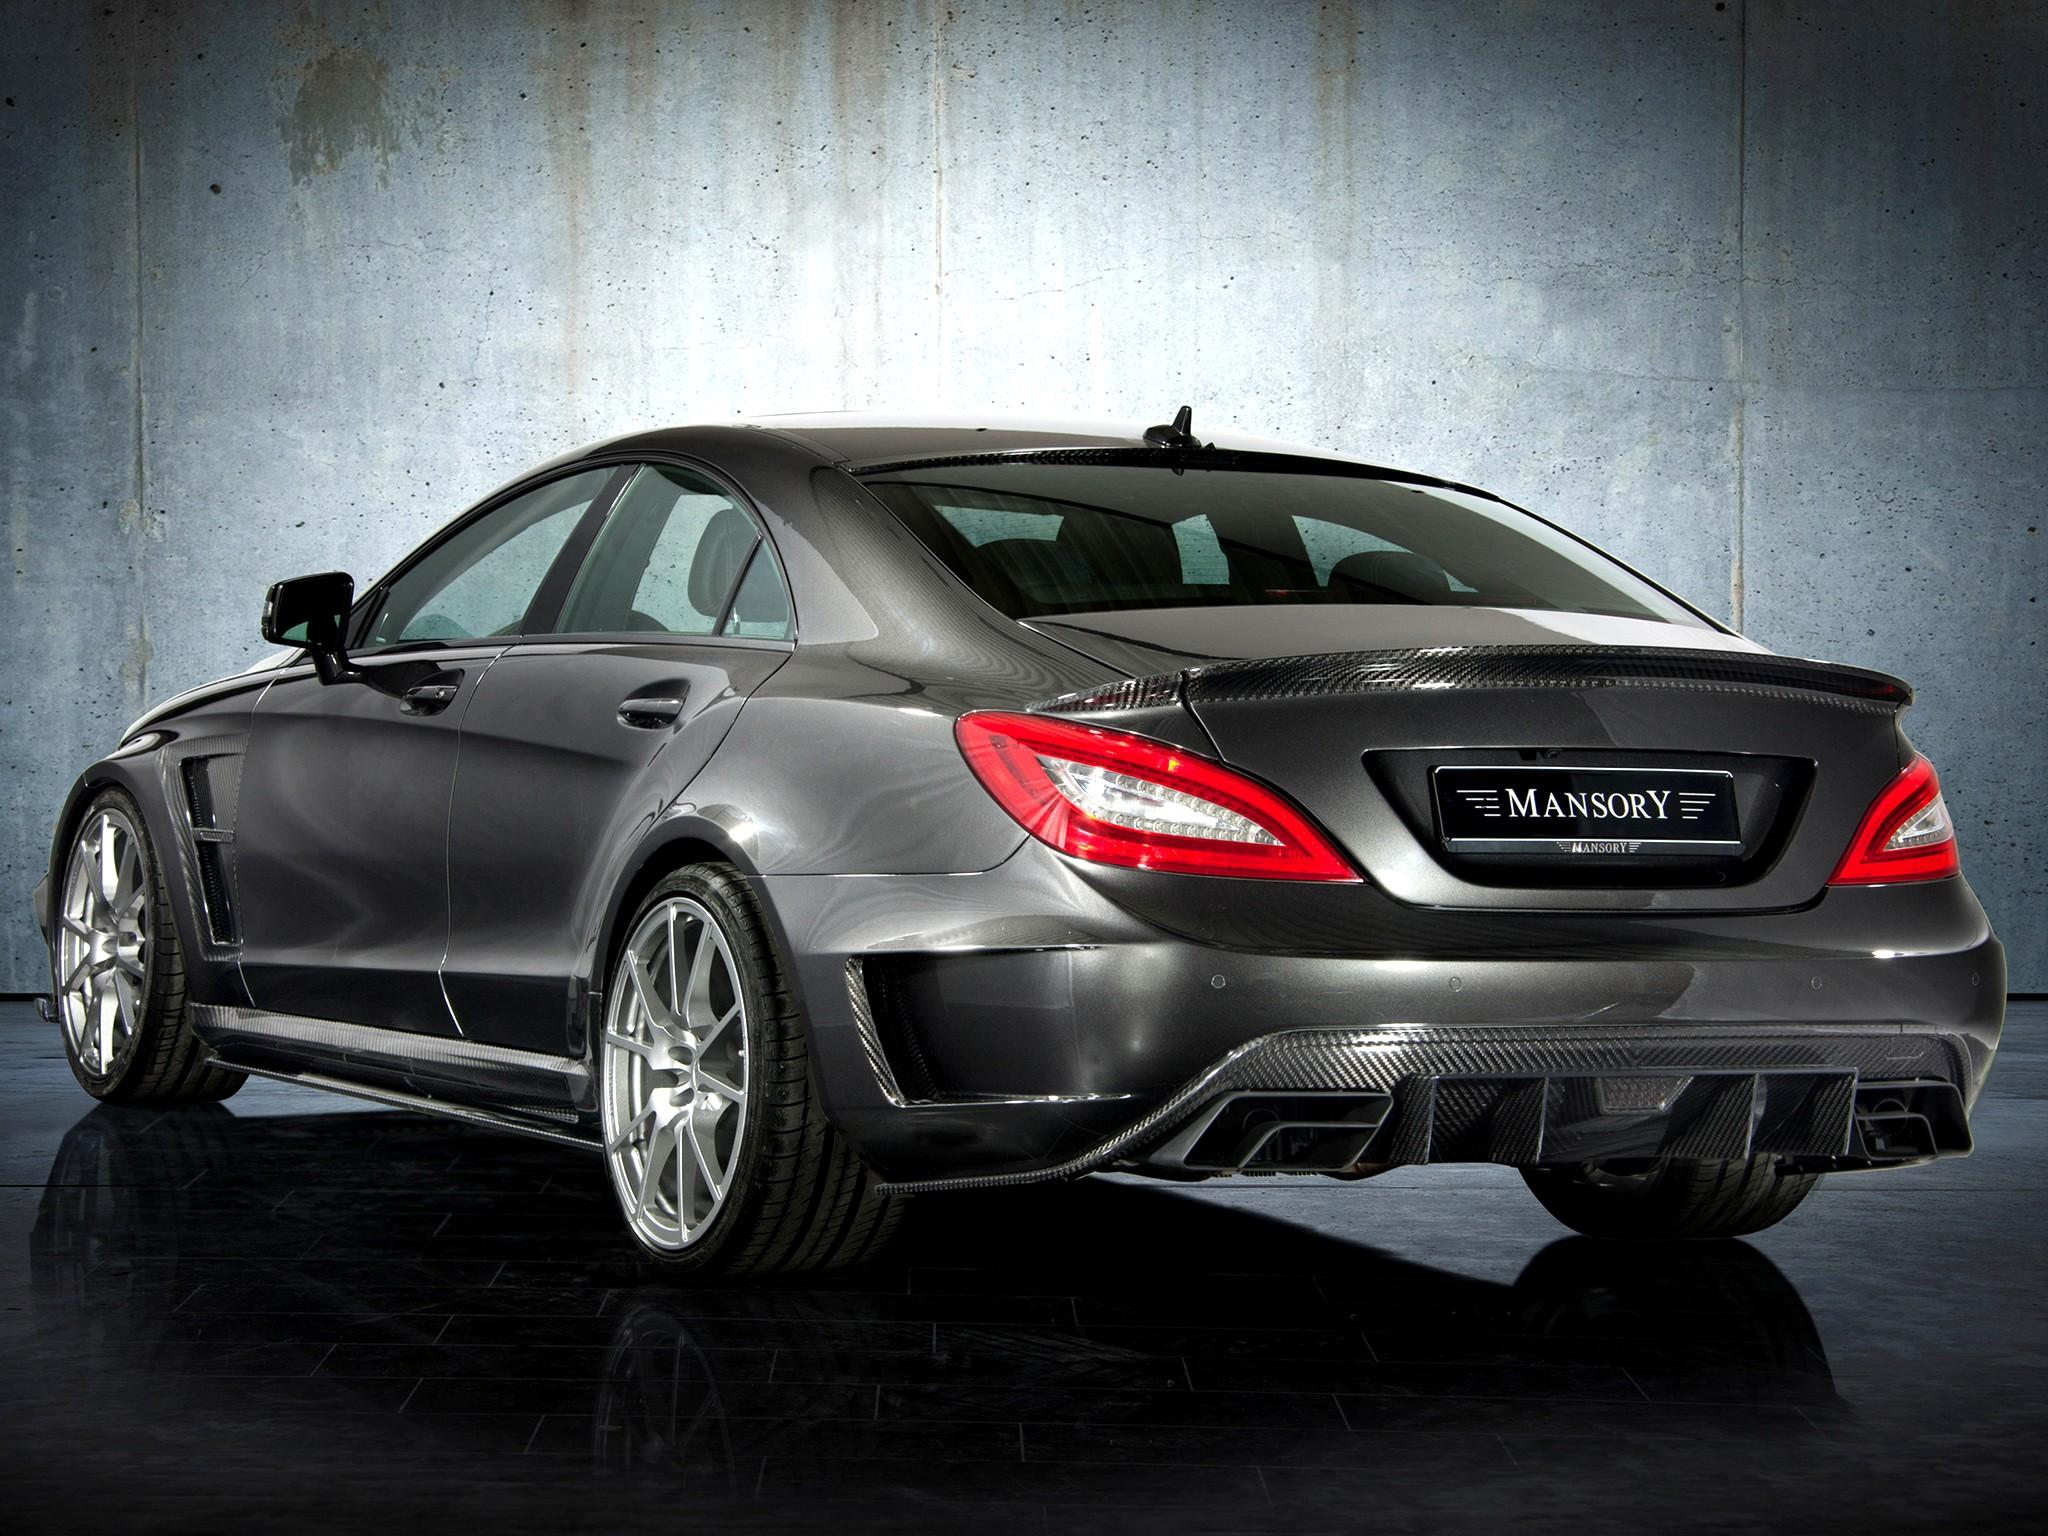 mercedes benz cls 63 amg wallpaper hd download. Black Bedroom Furniture Sets. Home Design Ideas